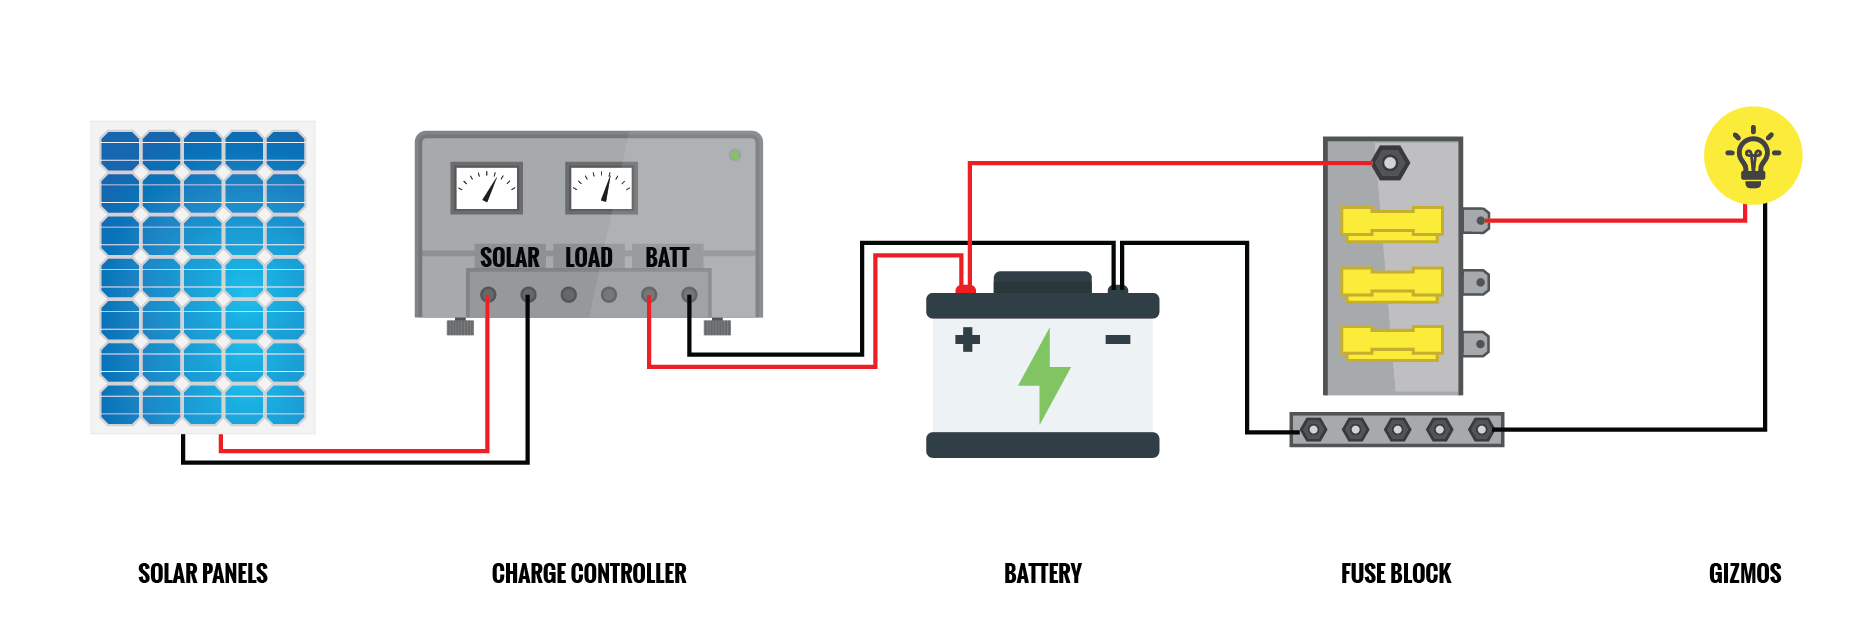 wiring diagram for a diy solar charge controller in an rv or camper van conversion